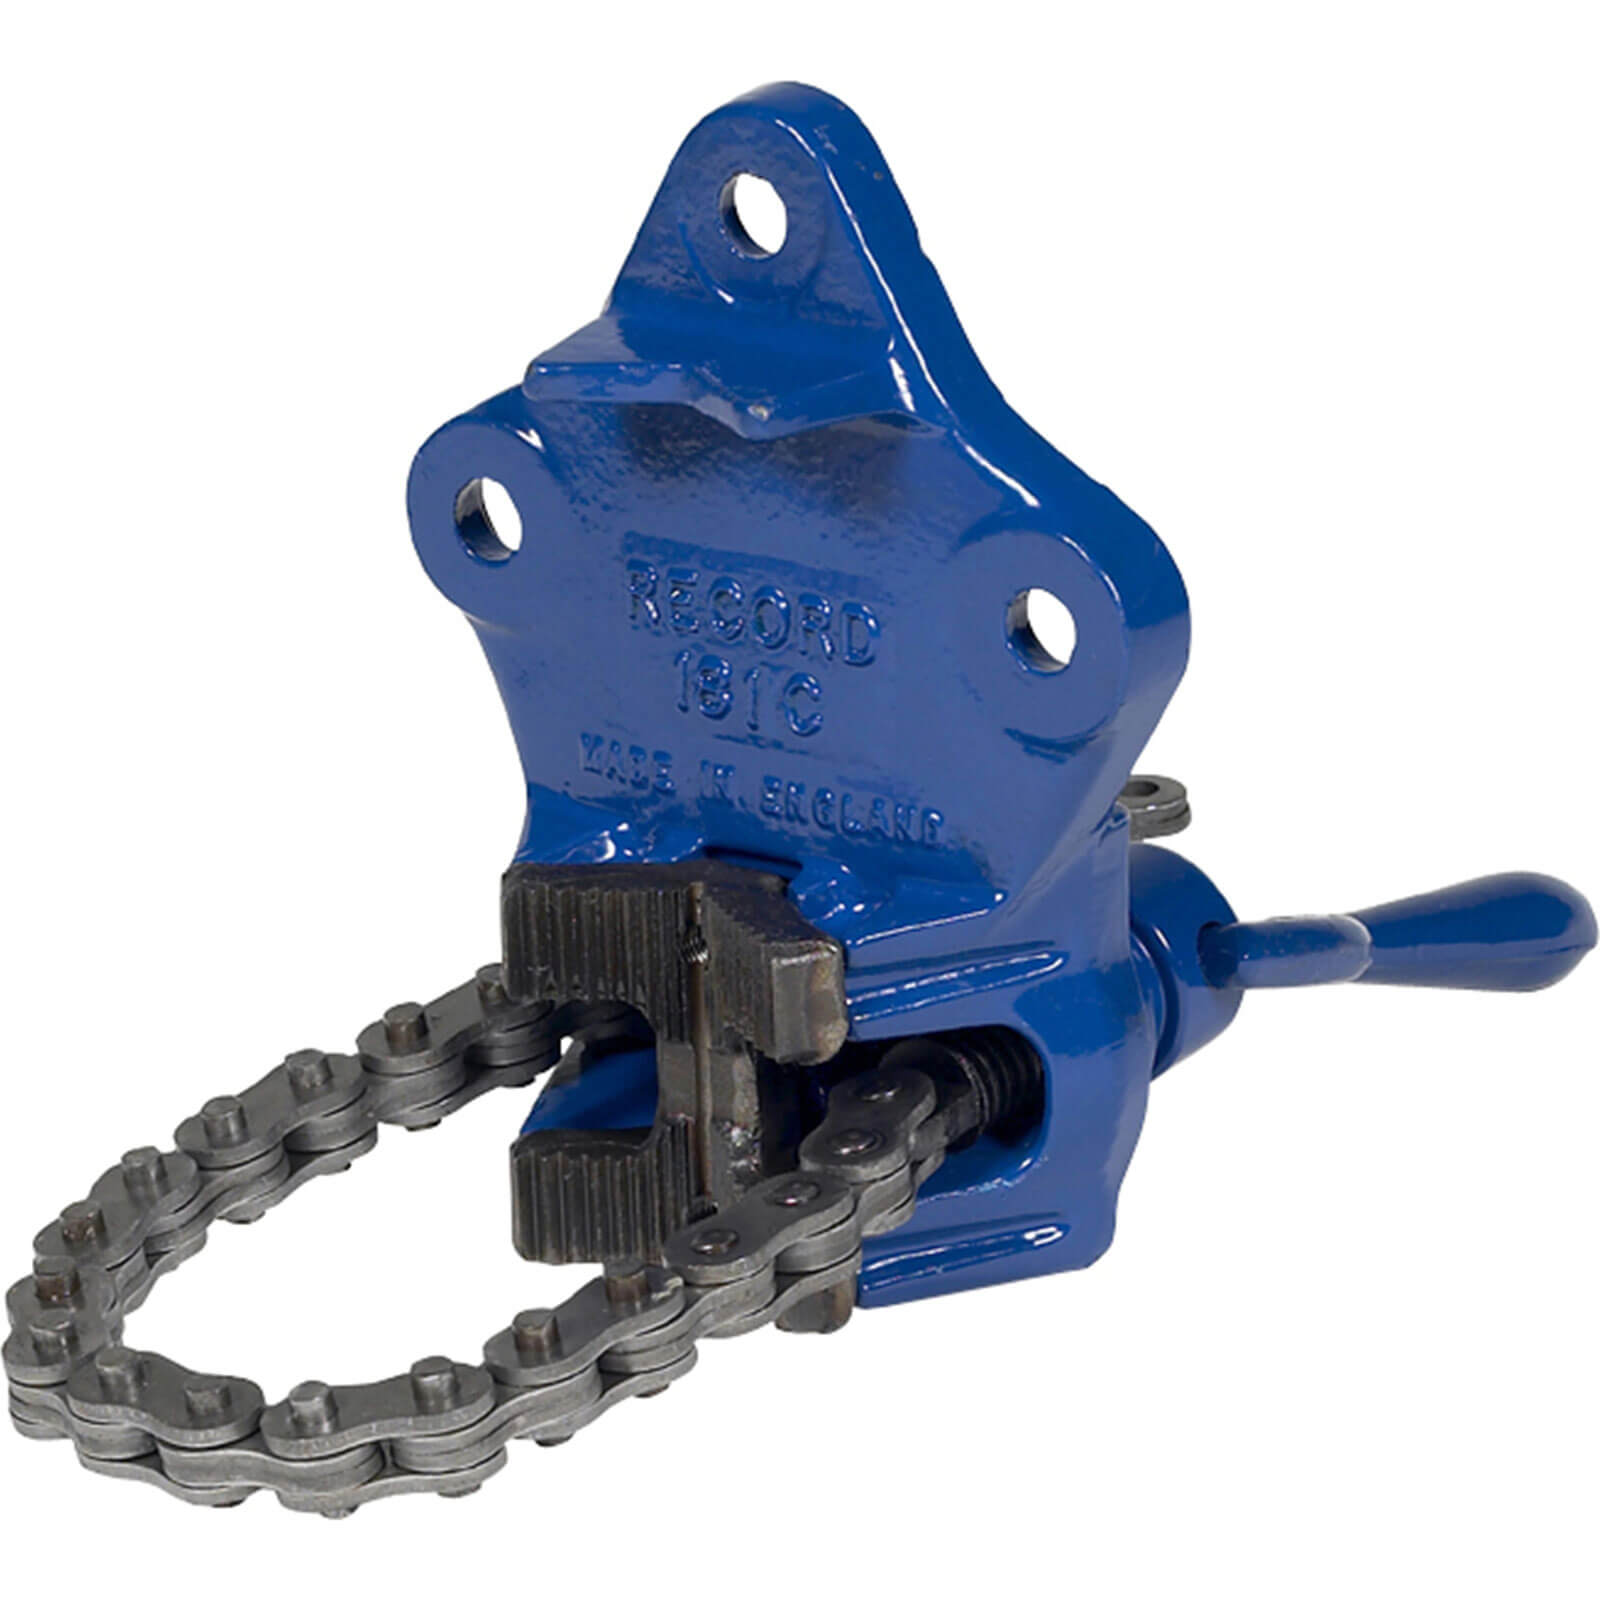 Irwin Record T181C Chain Pipe Vice 1/8